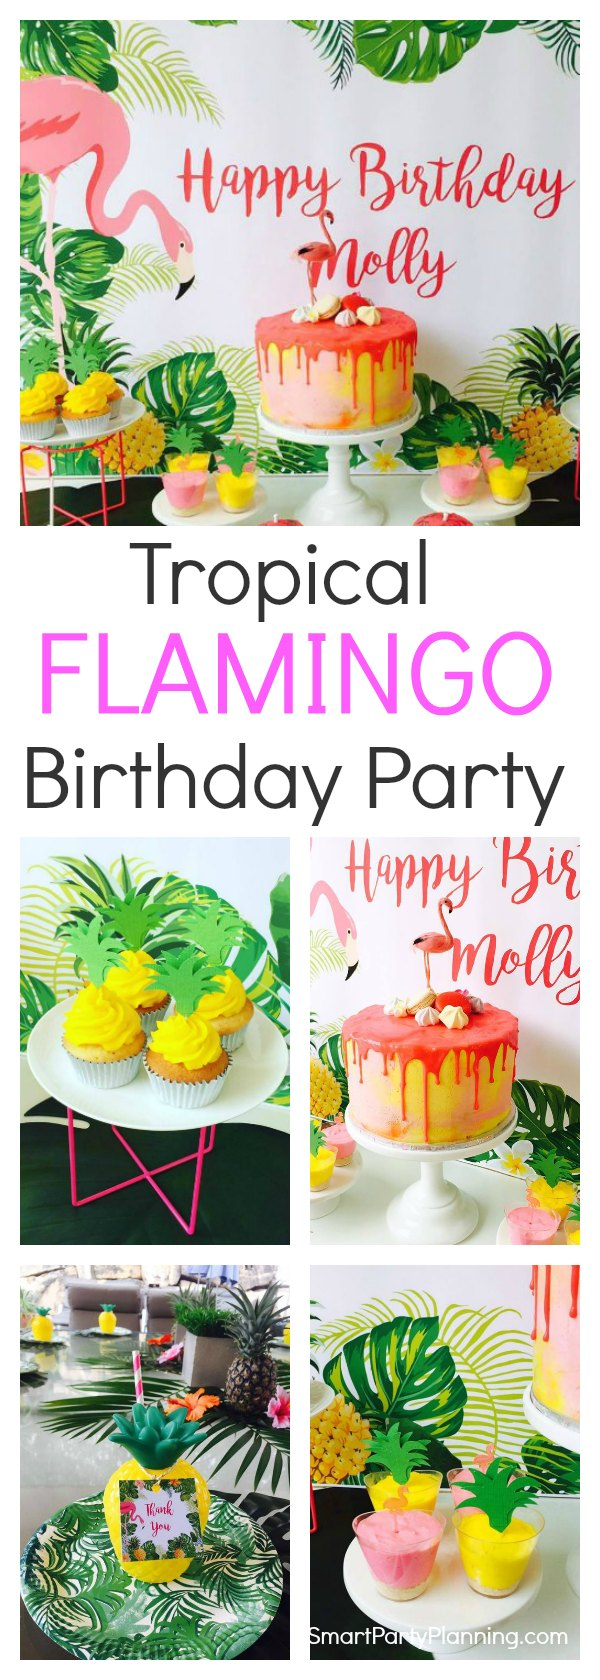 A gorgeous flamingo birthday party that will provide you with plenty of ideas to hold your own. This is one that the kids will love. Showcasing a stunning cake, delicious food and eye popping decorations. This is a party theme that will really stand out from the crowd. #Flamingobirthdayparty #DIY #Ideas #Easy #Kids